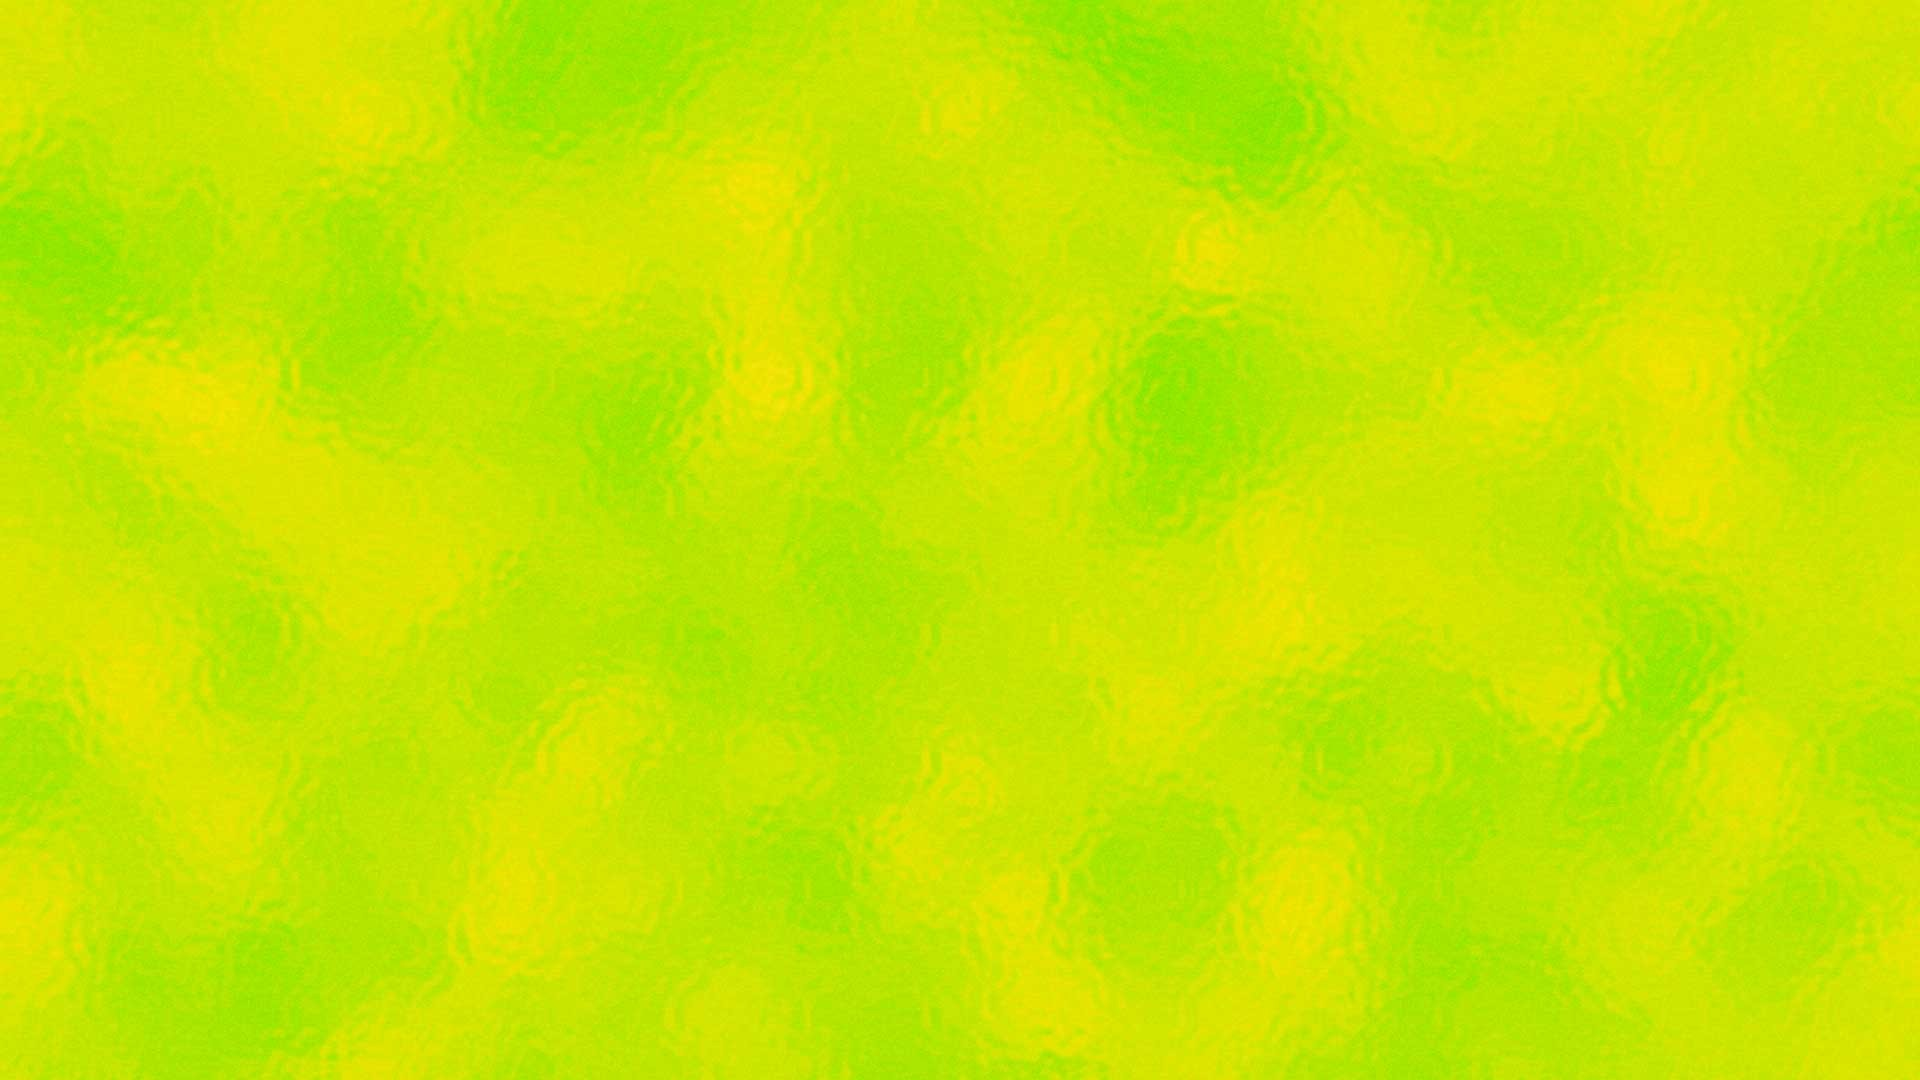 1920x1080 Plain Neon Yellow Green Iphone Wallpaper Phone Background Lock